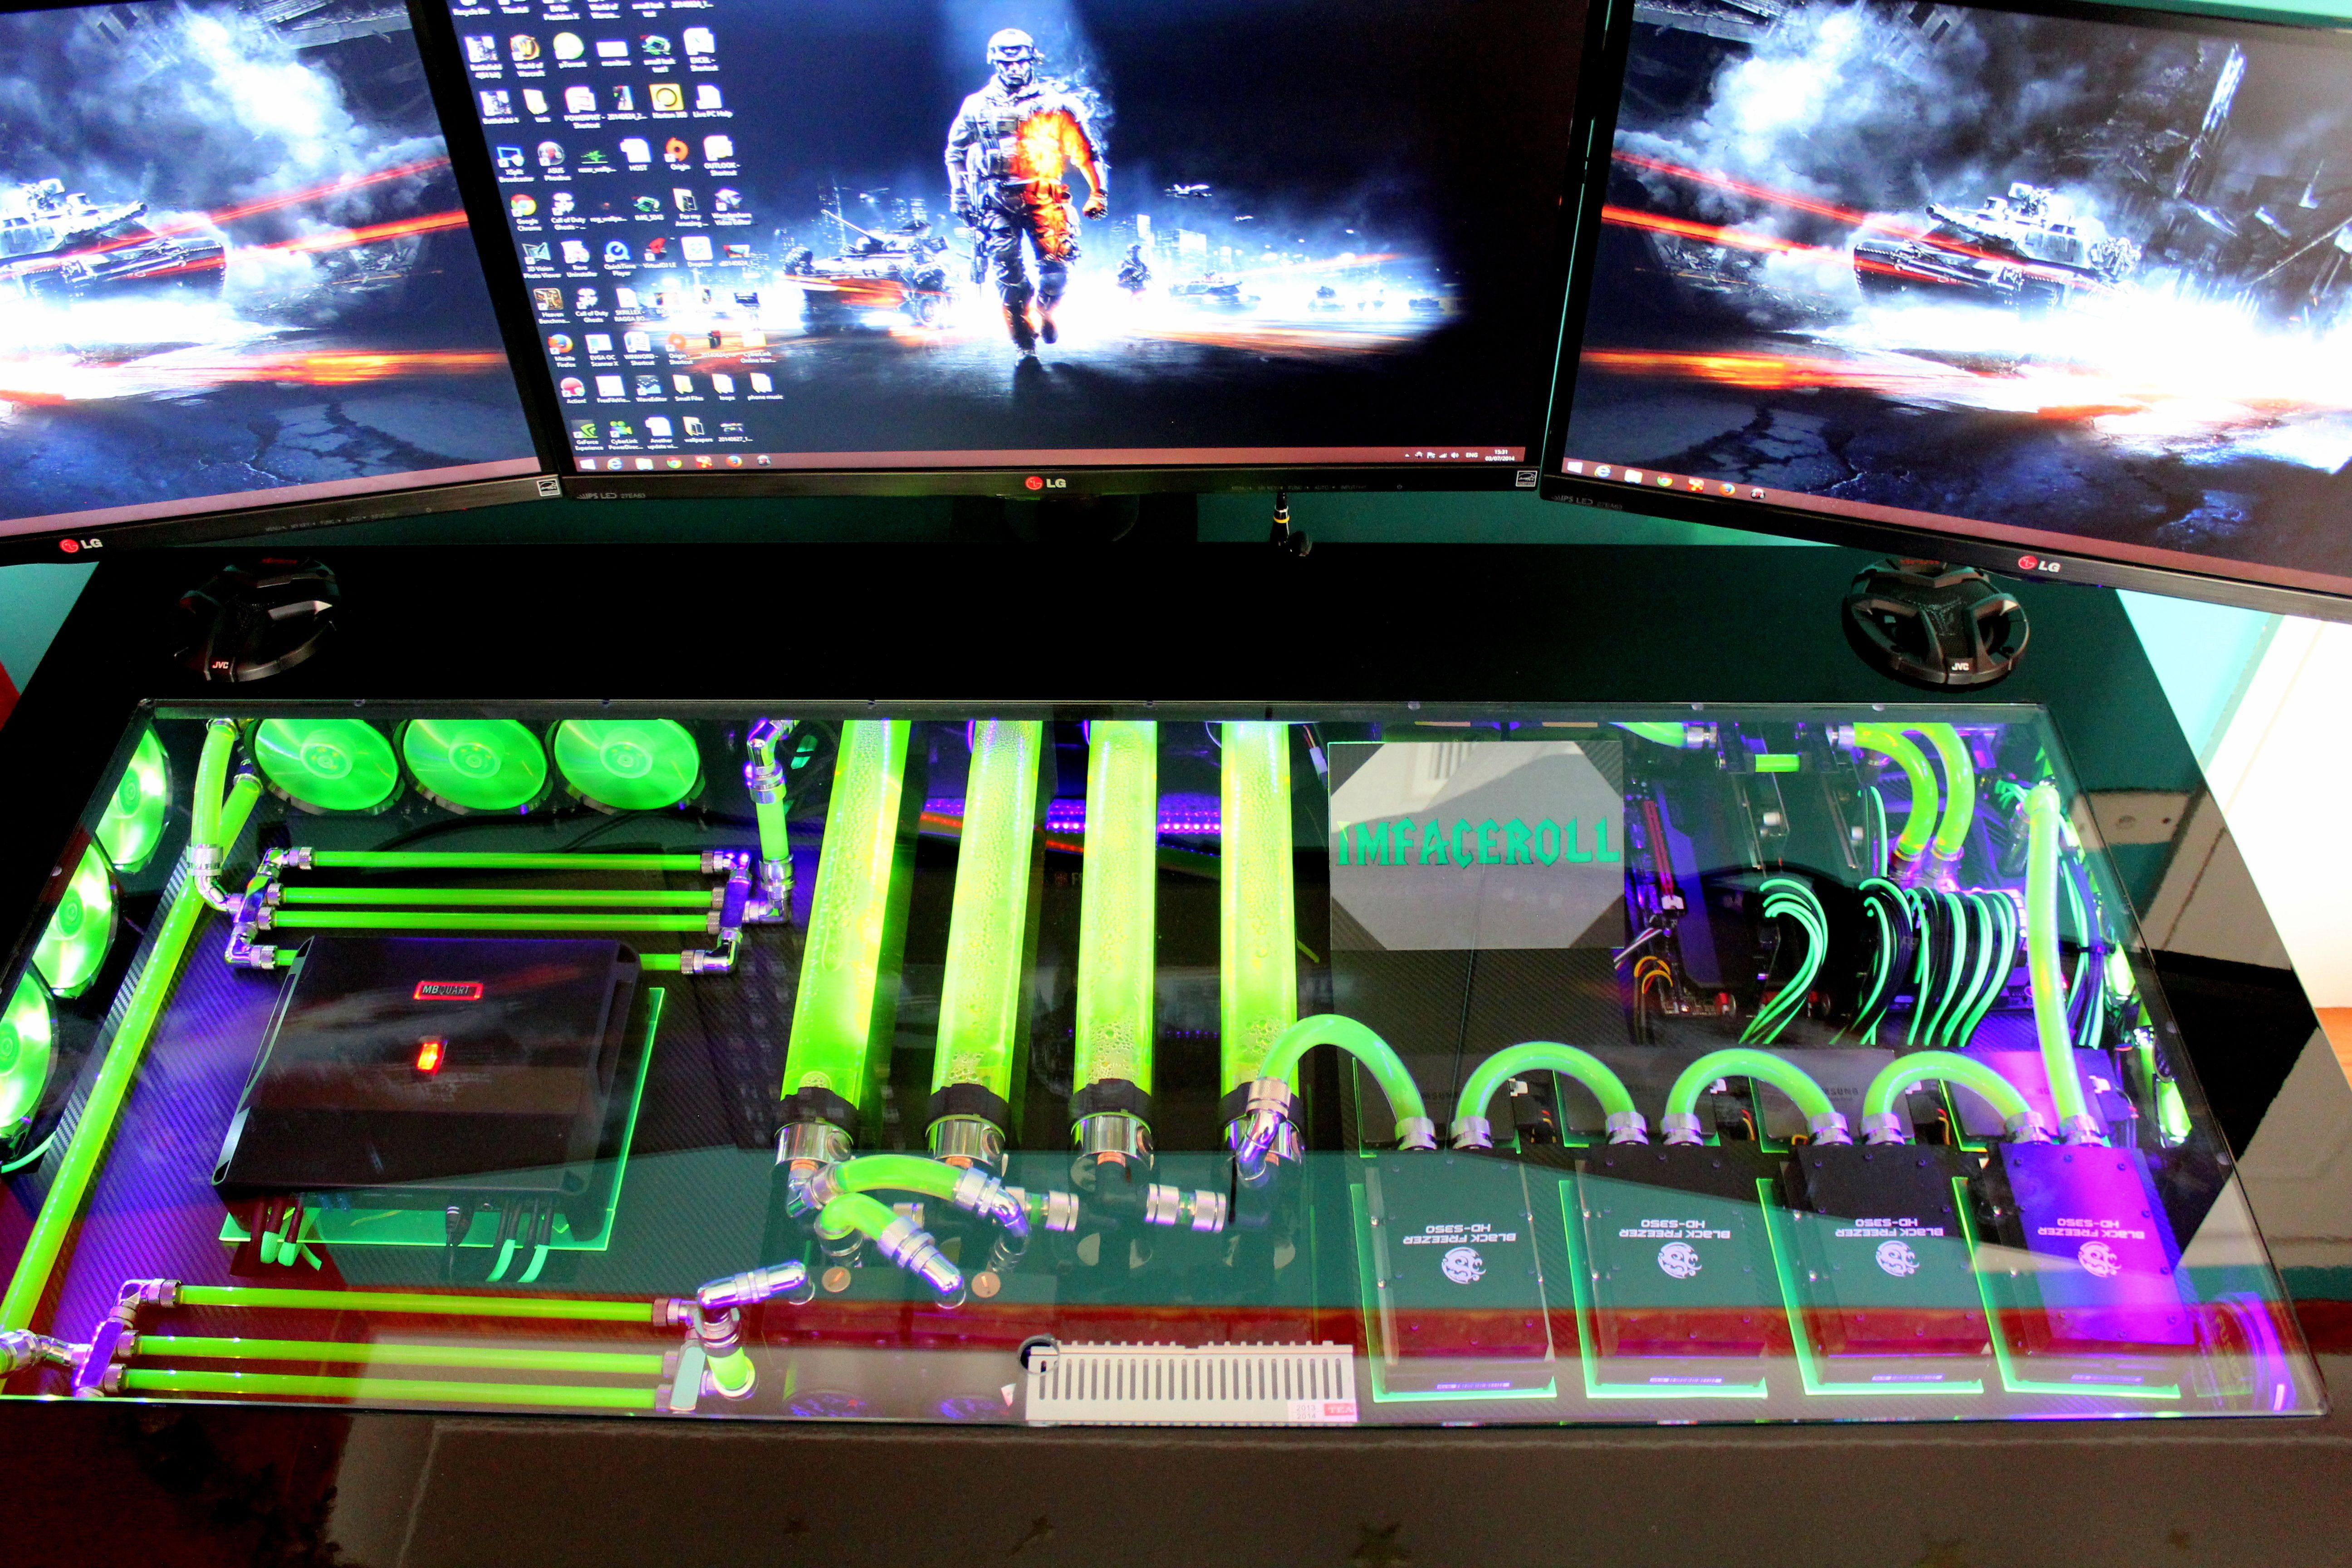 Pin On Gaming Computer Desk Ideas